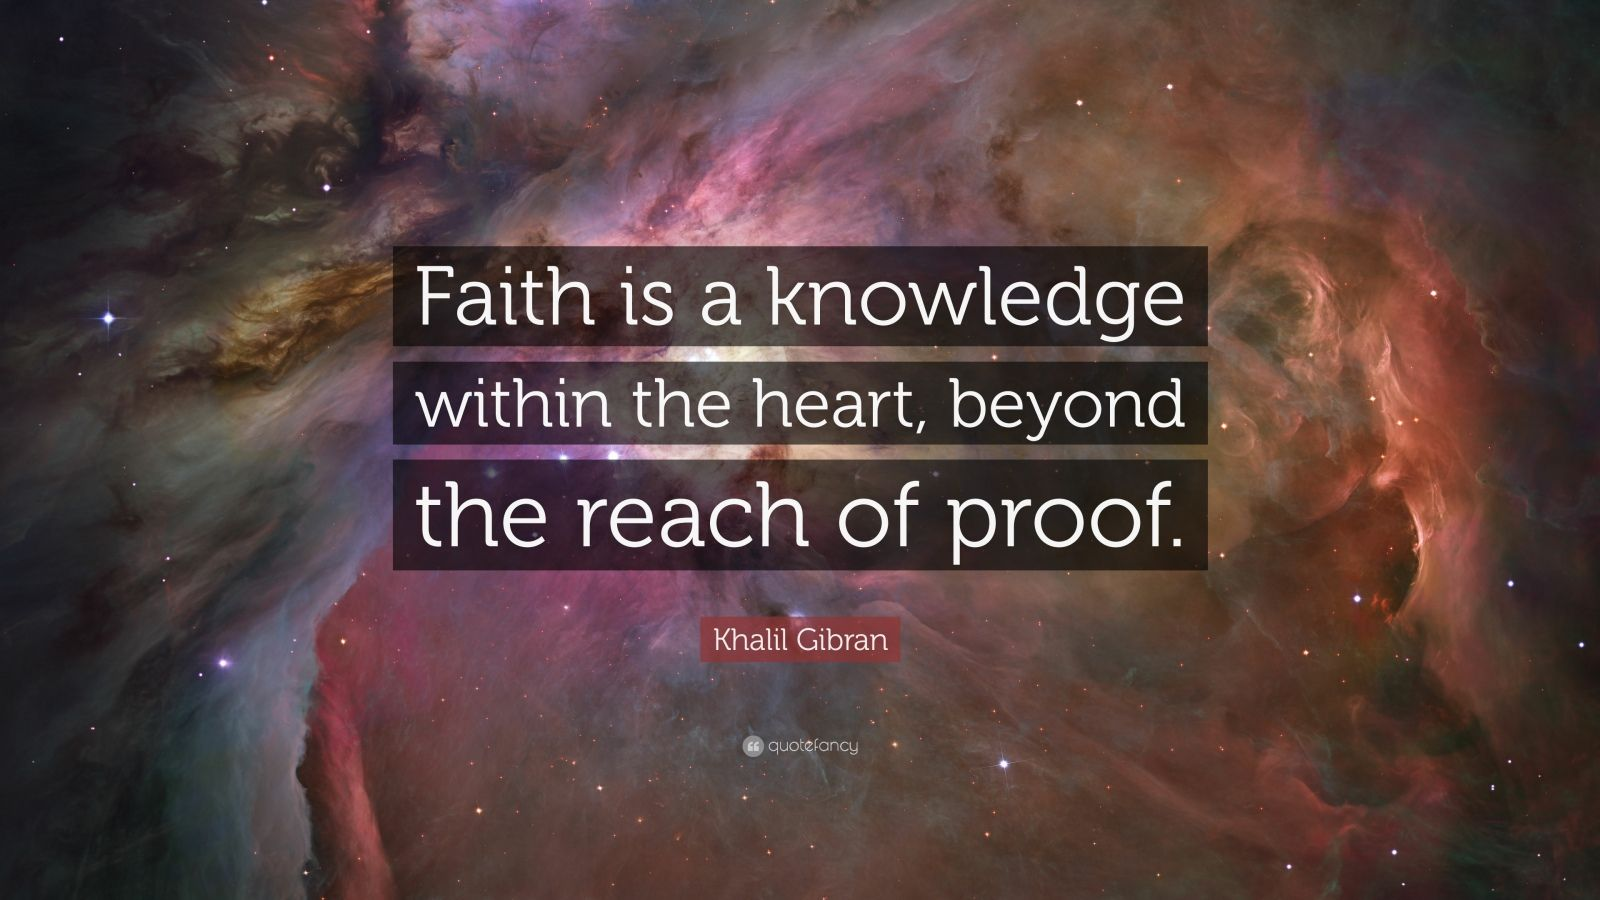 """Khalil Gibran Quote: """"Faith is a knowledge within the heart, beyond the reach of proof."""""""